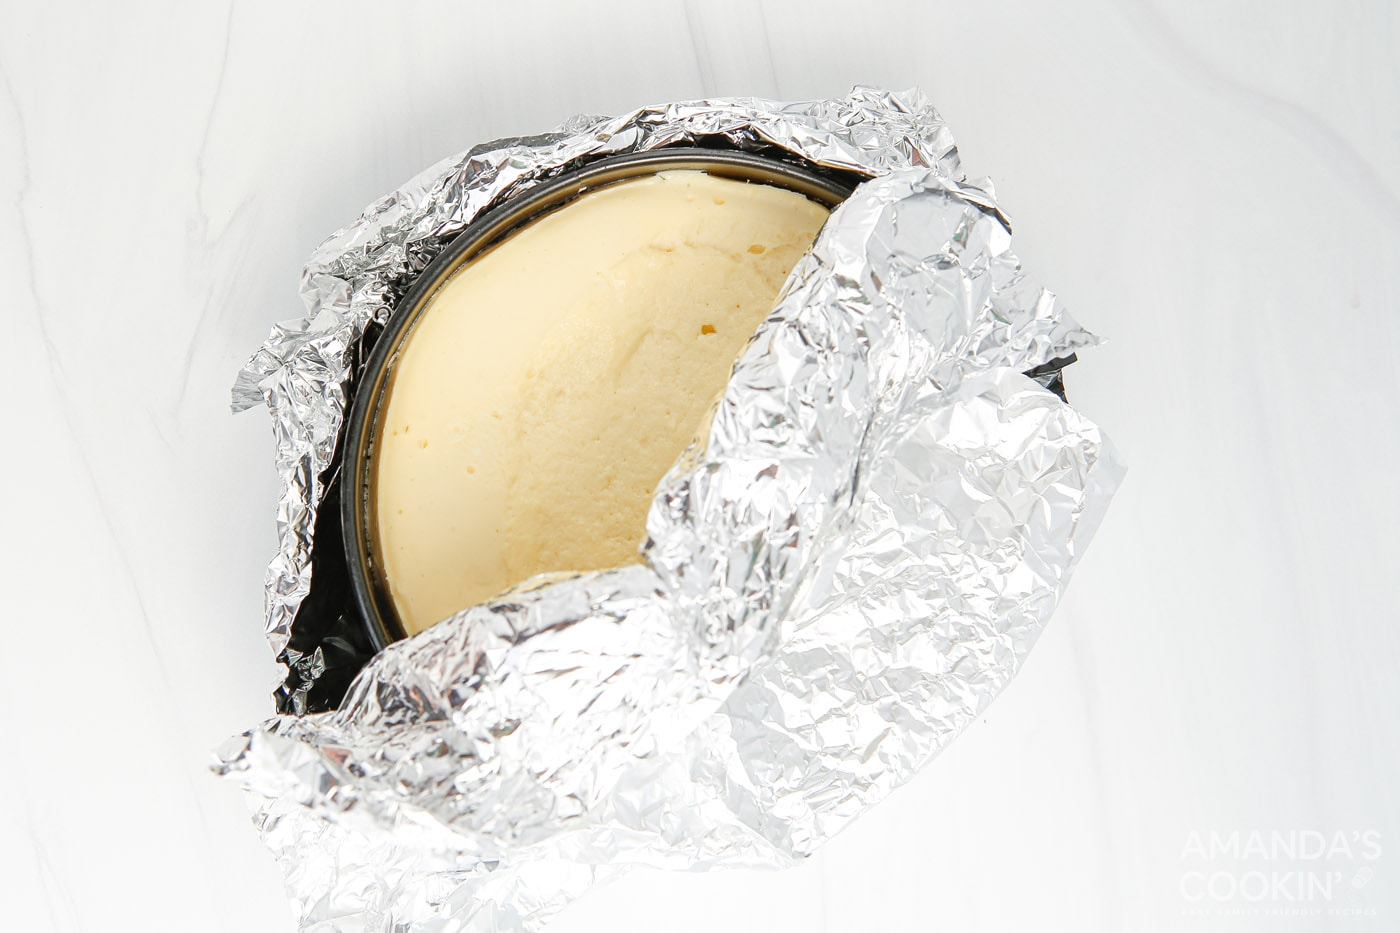 cheesecake wrapped in aluminum foil